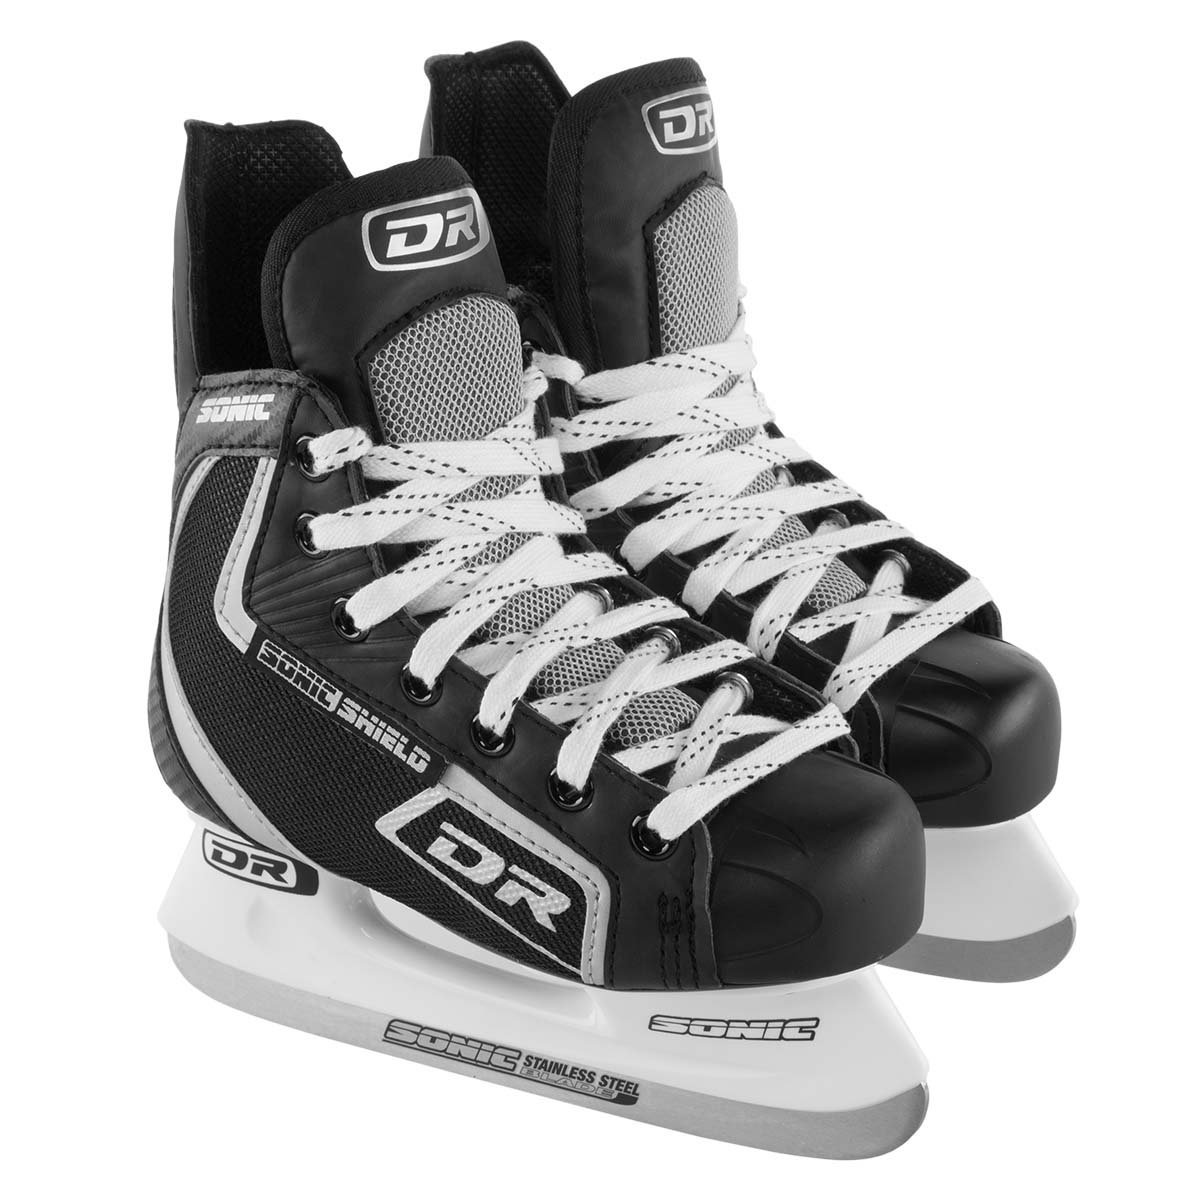 DR Sports 113 Men's Hockey Skate Black Silver, Size 10 by DR Sports